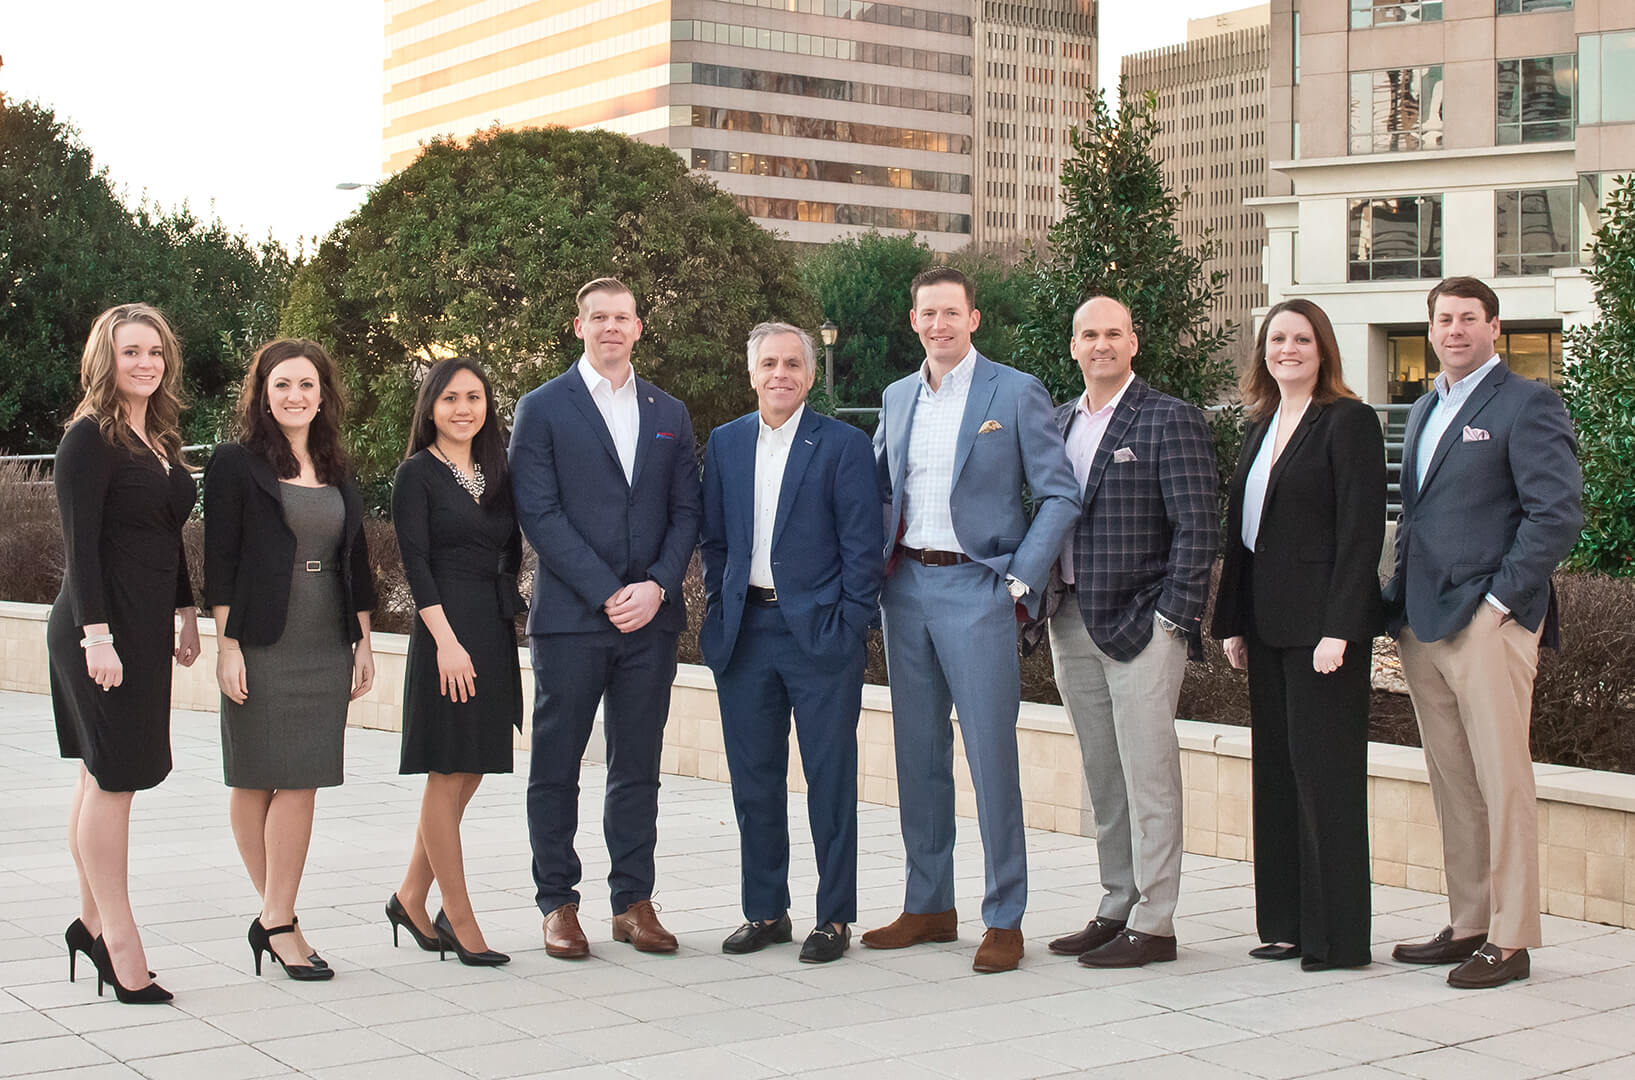 Brecher, Greenberg & Brinson Group team photo